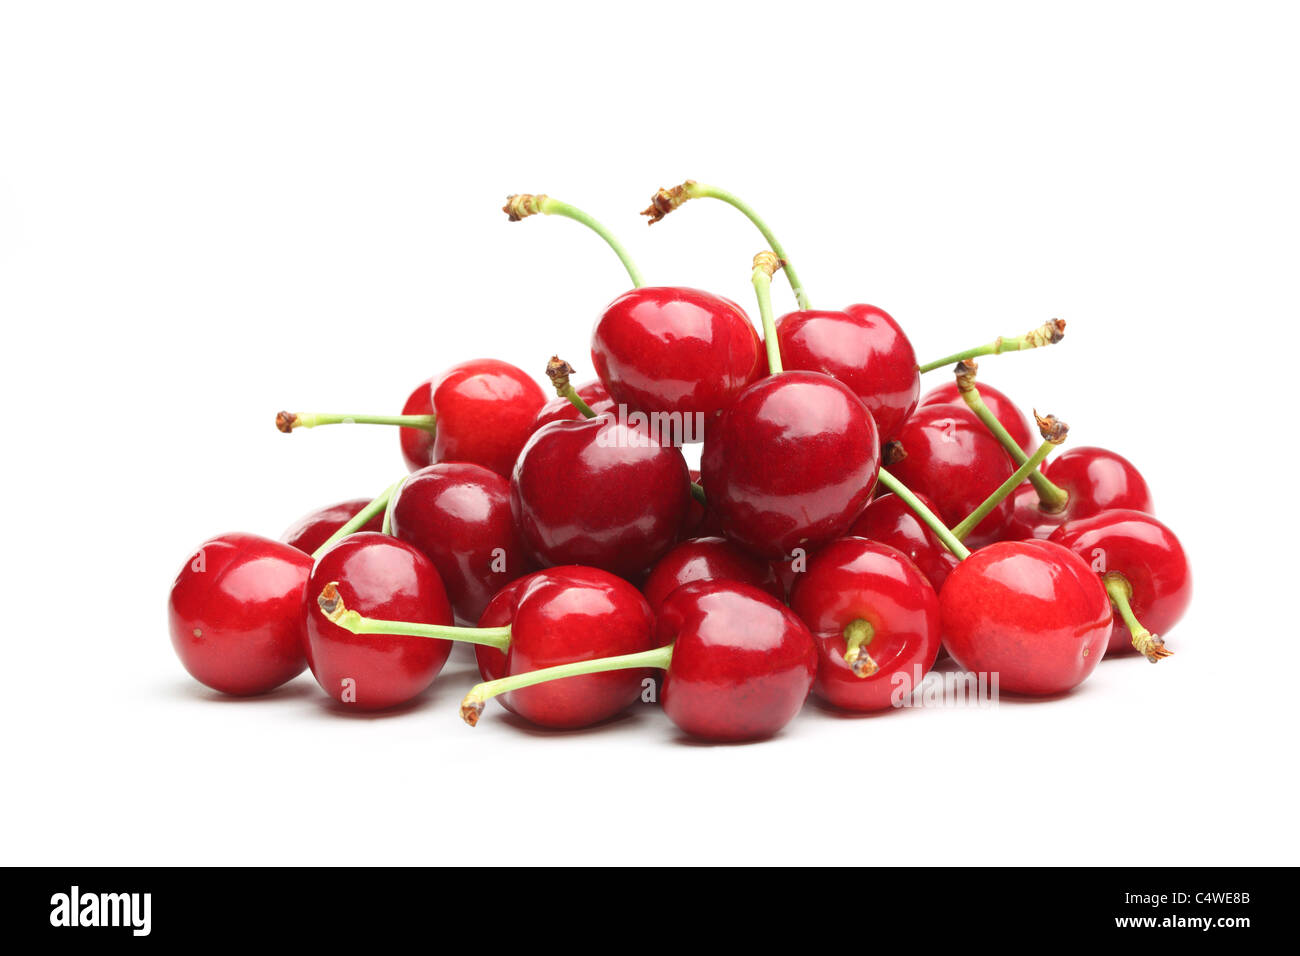 Pile of red cherries isolated on the white background - Stock Image